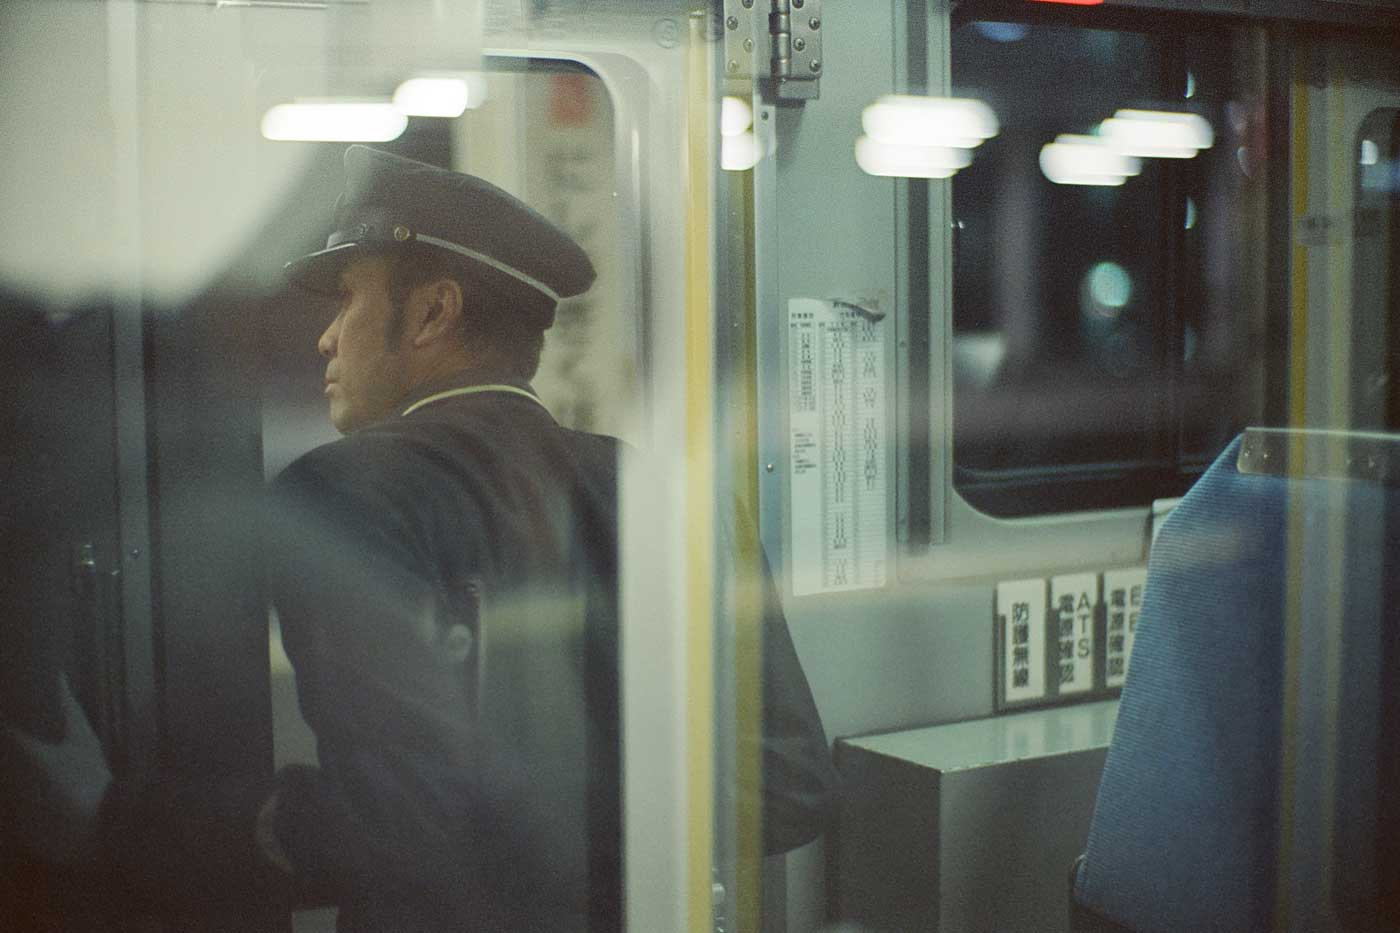 analog-film-review-kodak-vision3-vision-3-5219-7219-500T-800T-tungsten-photography-tokyo-japan-night-train-conductor-checking-JR-line-noctilux-50mm-f1.0-f1-50-v4-build-in-hood-e60